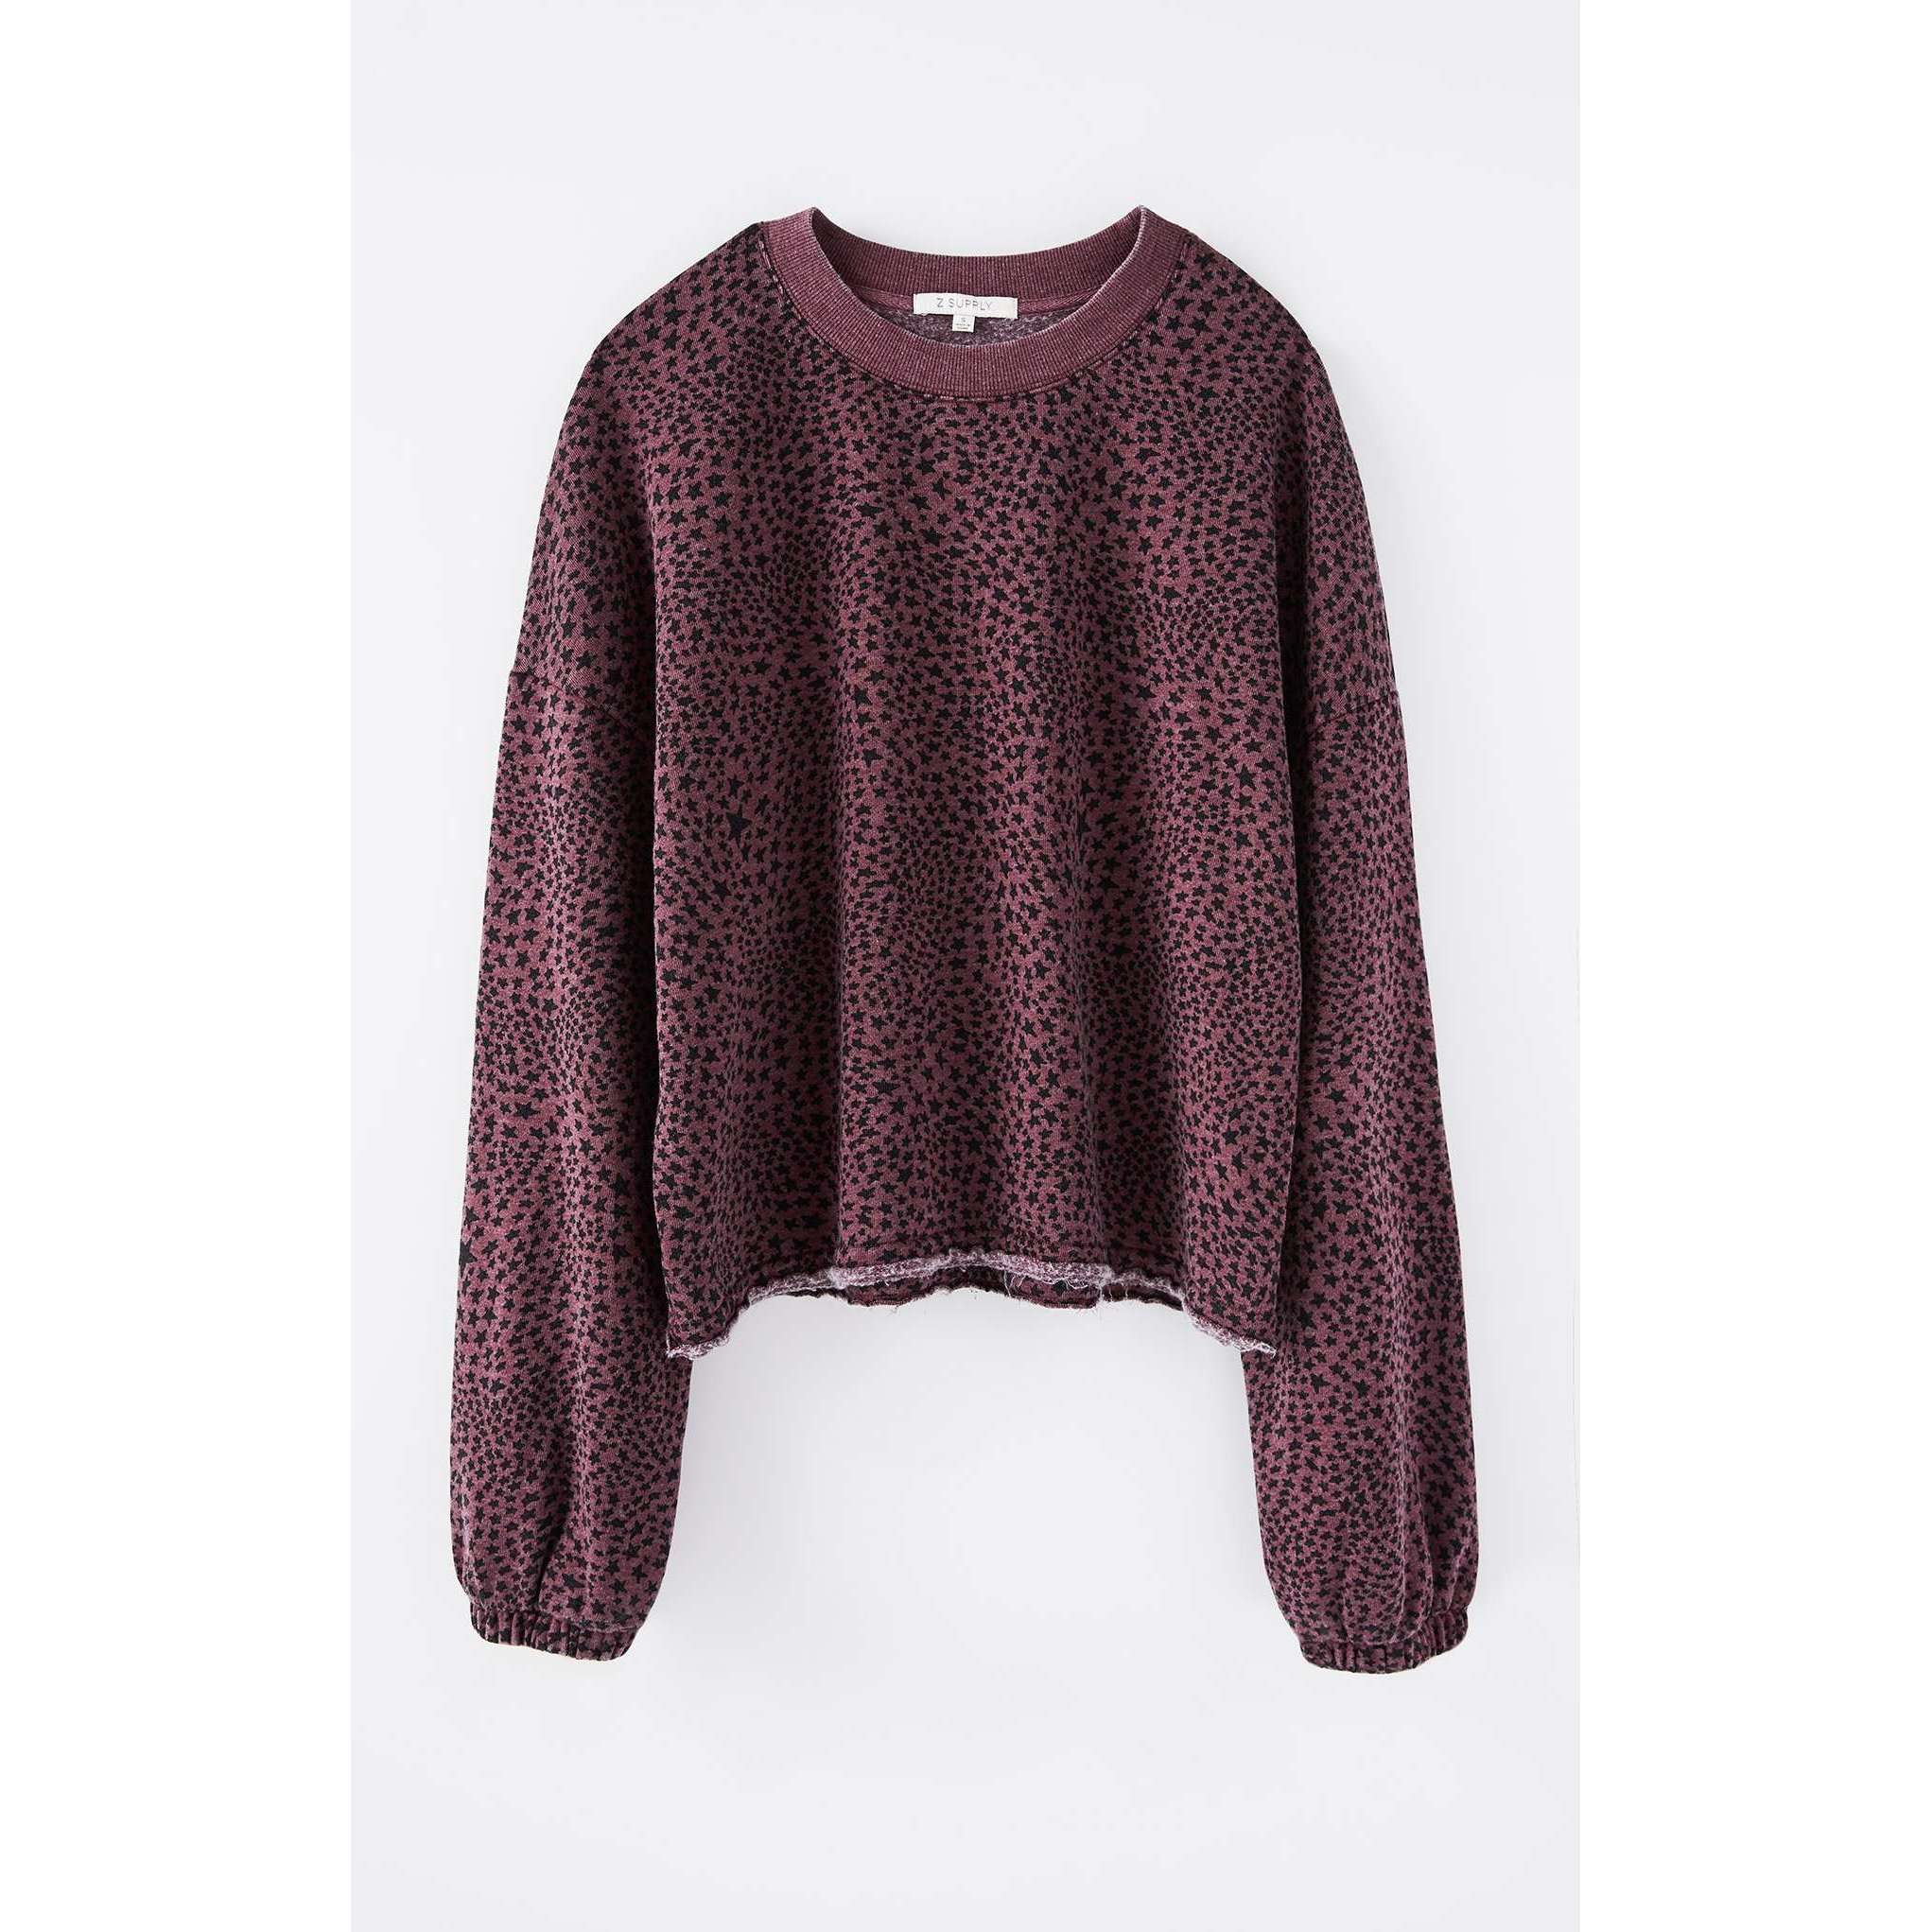 8.28 Boutique:Z-Supply,Z-Supply Cruise Stardust Sweatshirt,Loungewear